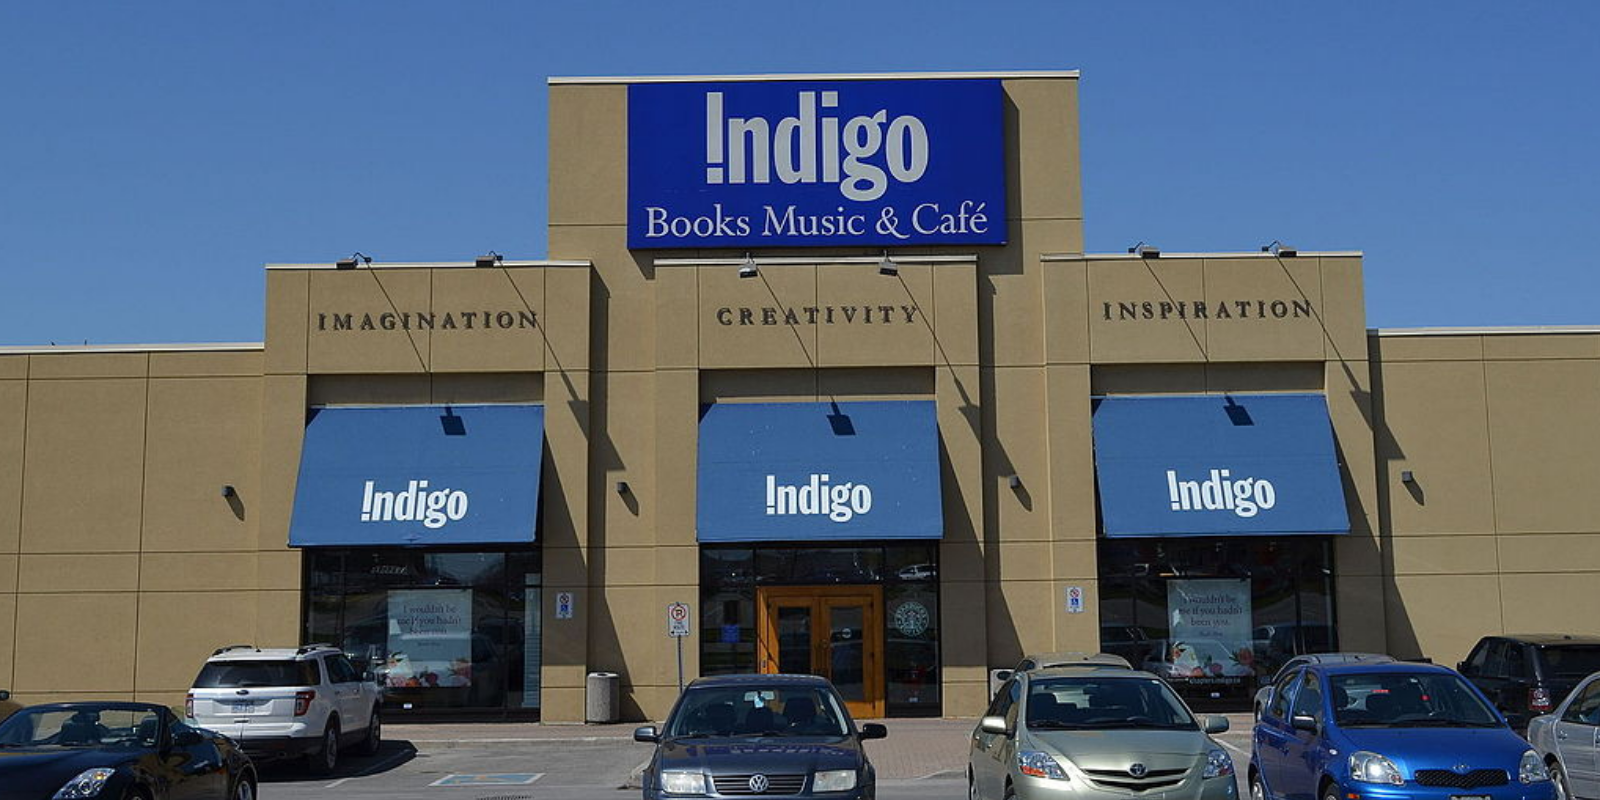 Ontario Chapters-Indigo refuses to let disabled girl in store despite mask exemption